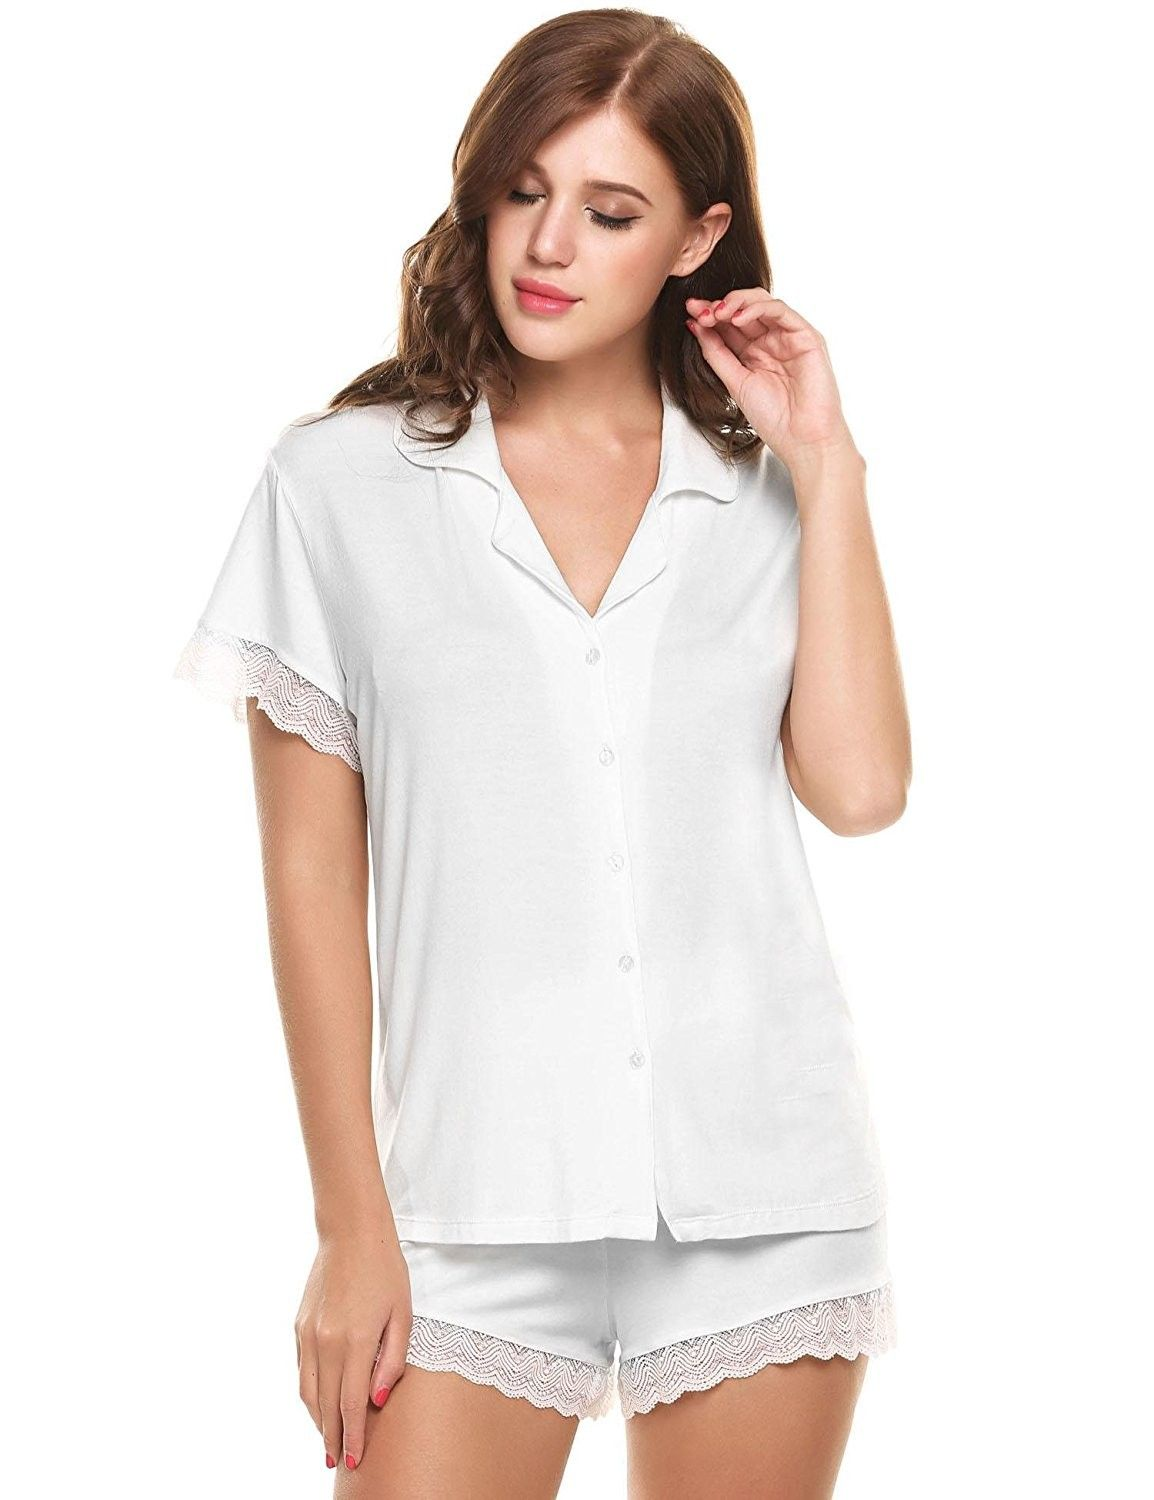 Womens Short Sleeve Slim Lace Pajama Sets Tops And Shorts S Xl White C6186ws56lh Sleepwear Women Pajama Set Women Short Sleeve Pajama Set